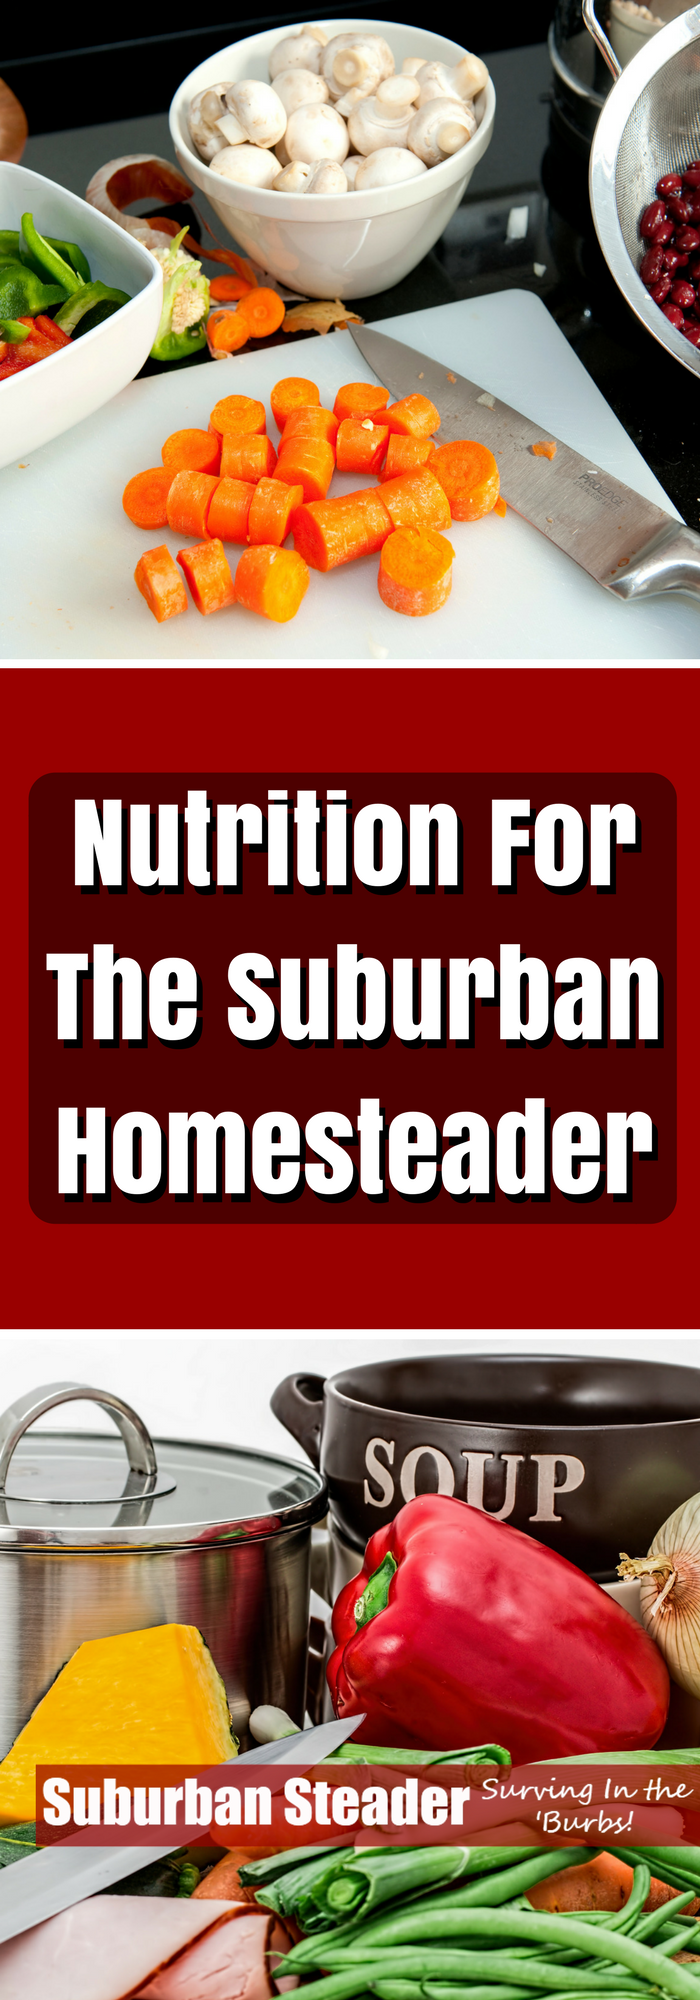 Nutrition is not the first thing that comes to mind when you say suburban homesteading but nutrition is key to success around the homestead.